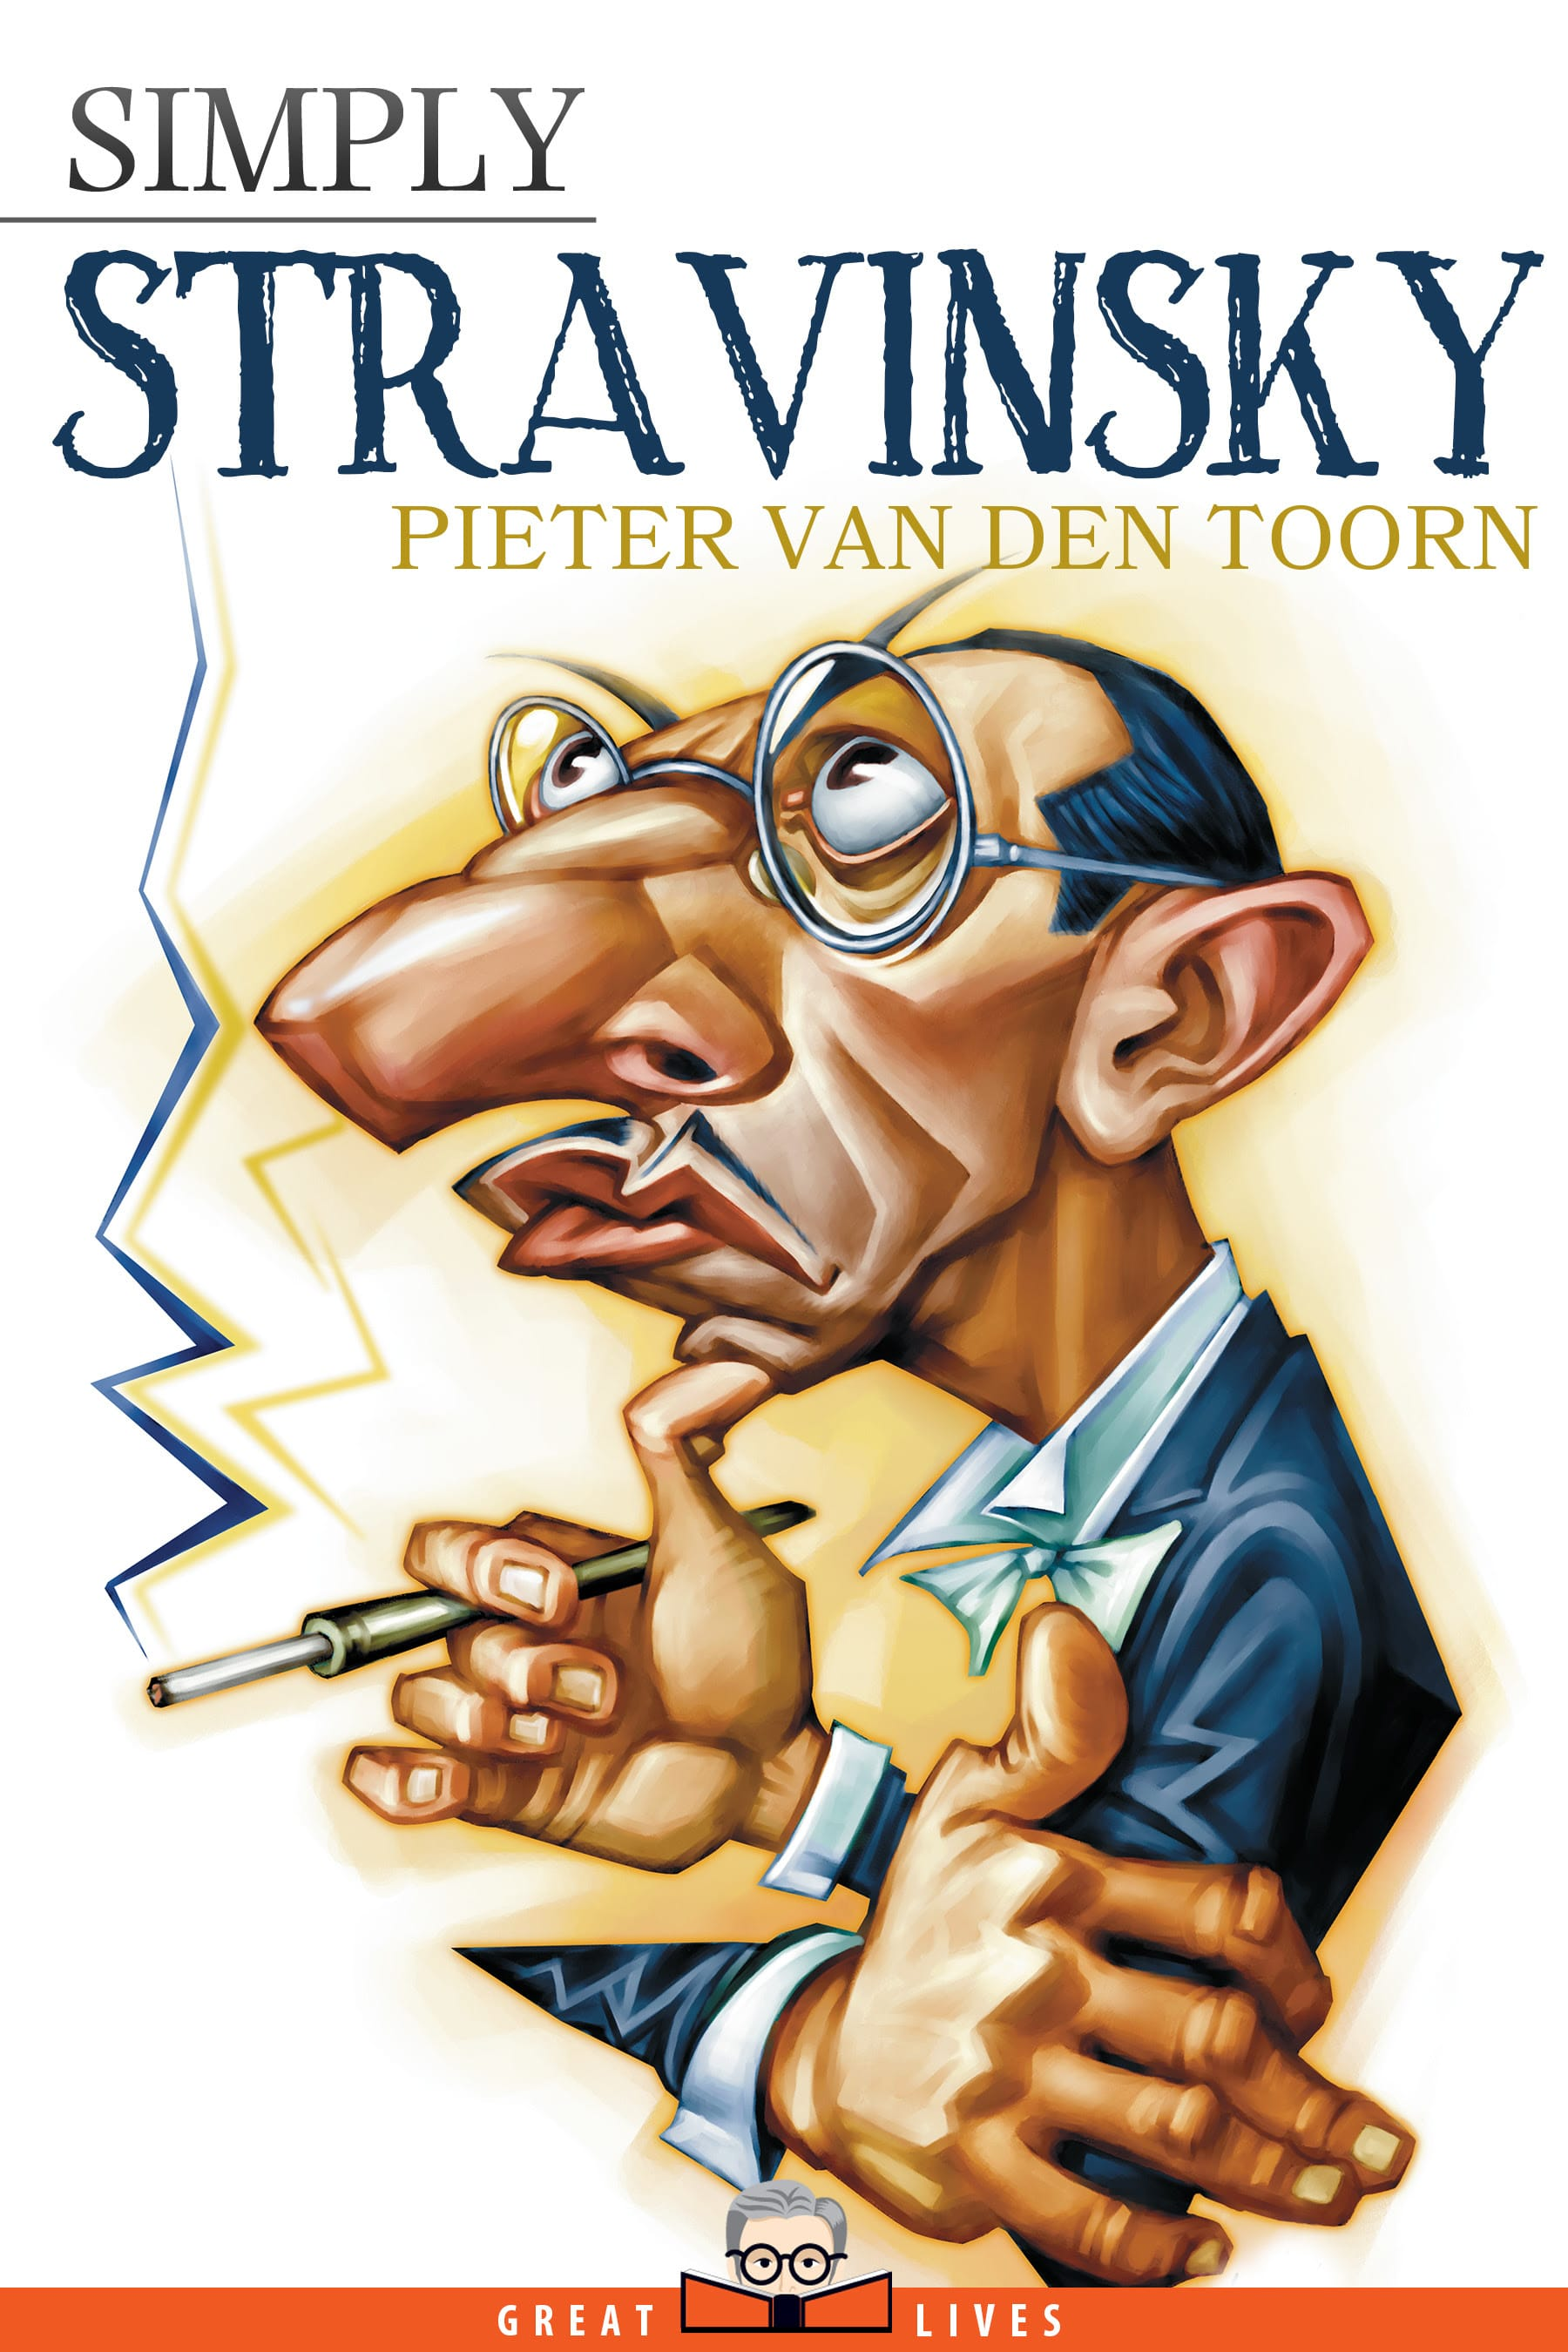 583cdf726ed80a11bc87d46c56bcda43 1 - New Book on Russian Composer Igor Stravinsky Offers an Accessible and Engaging Introduction to the Composer's Life and Work